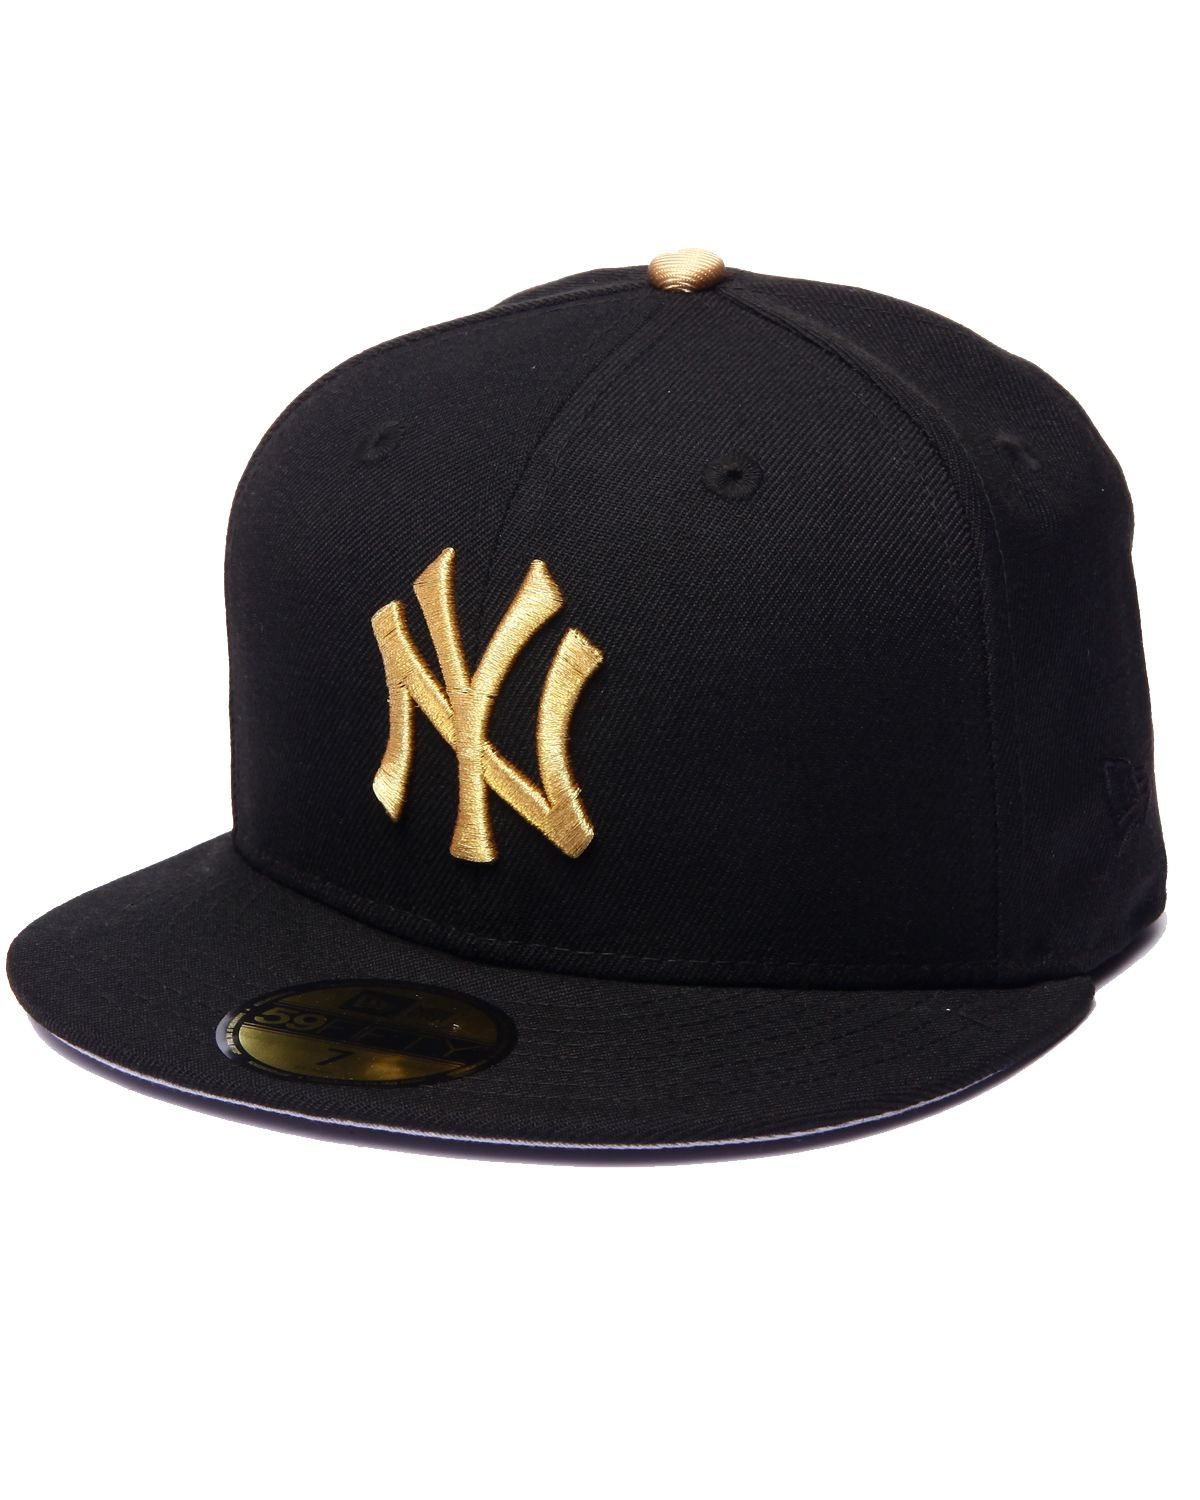 Buy New York Yankees Your Airness Metallic Gold Edition 5950 Fitted Hat Men S Hats From New Era Fitted Hats Hats For Men Mens Accessories Fashion